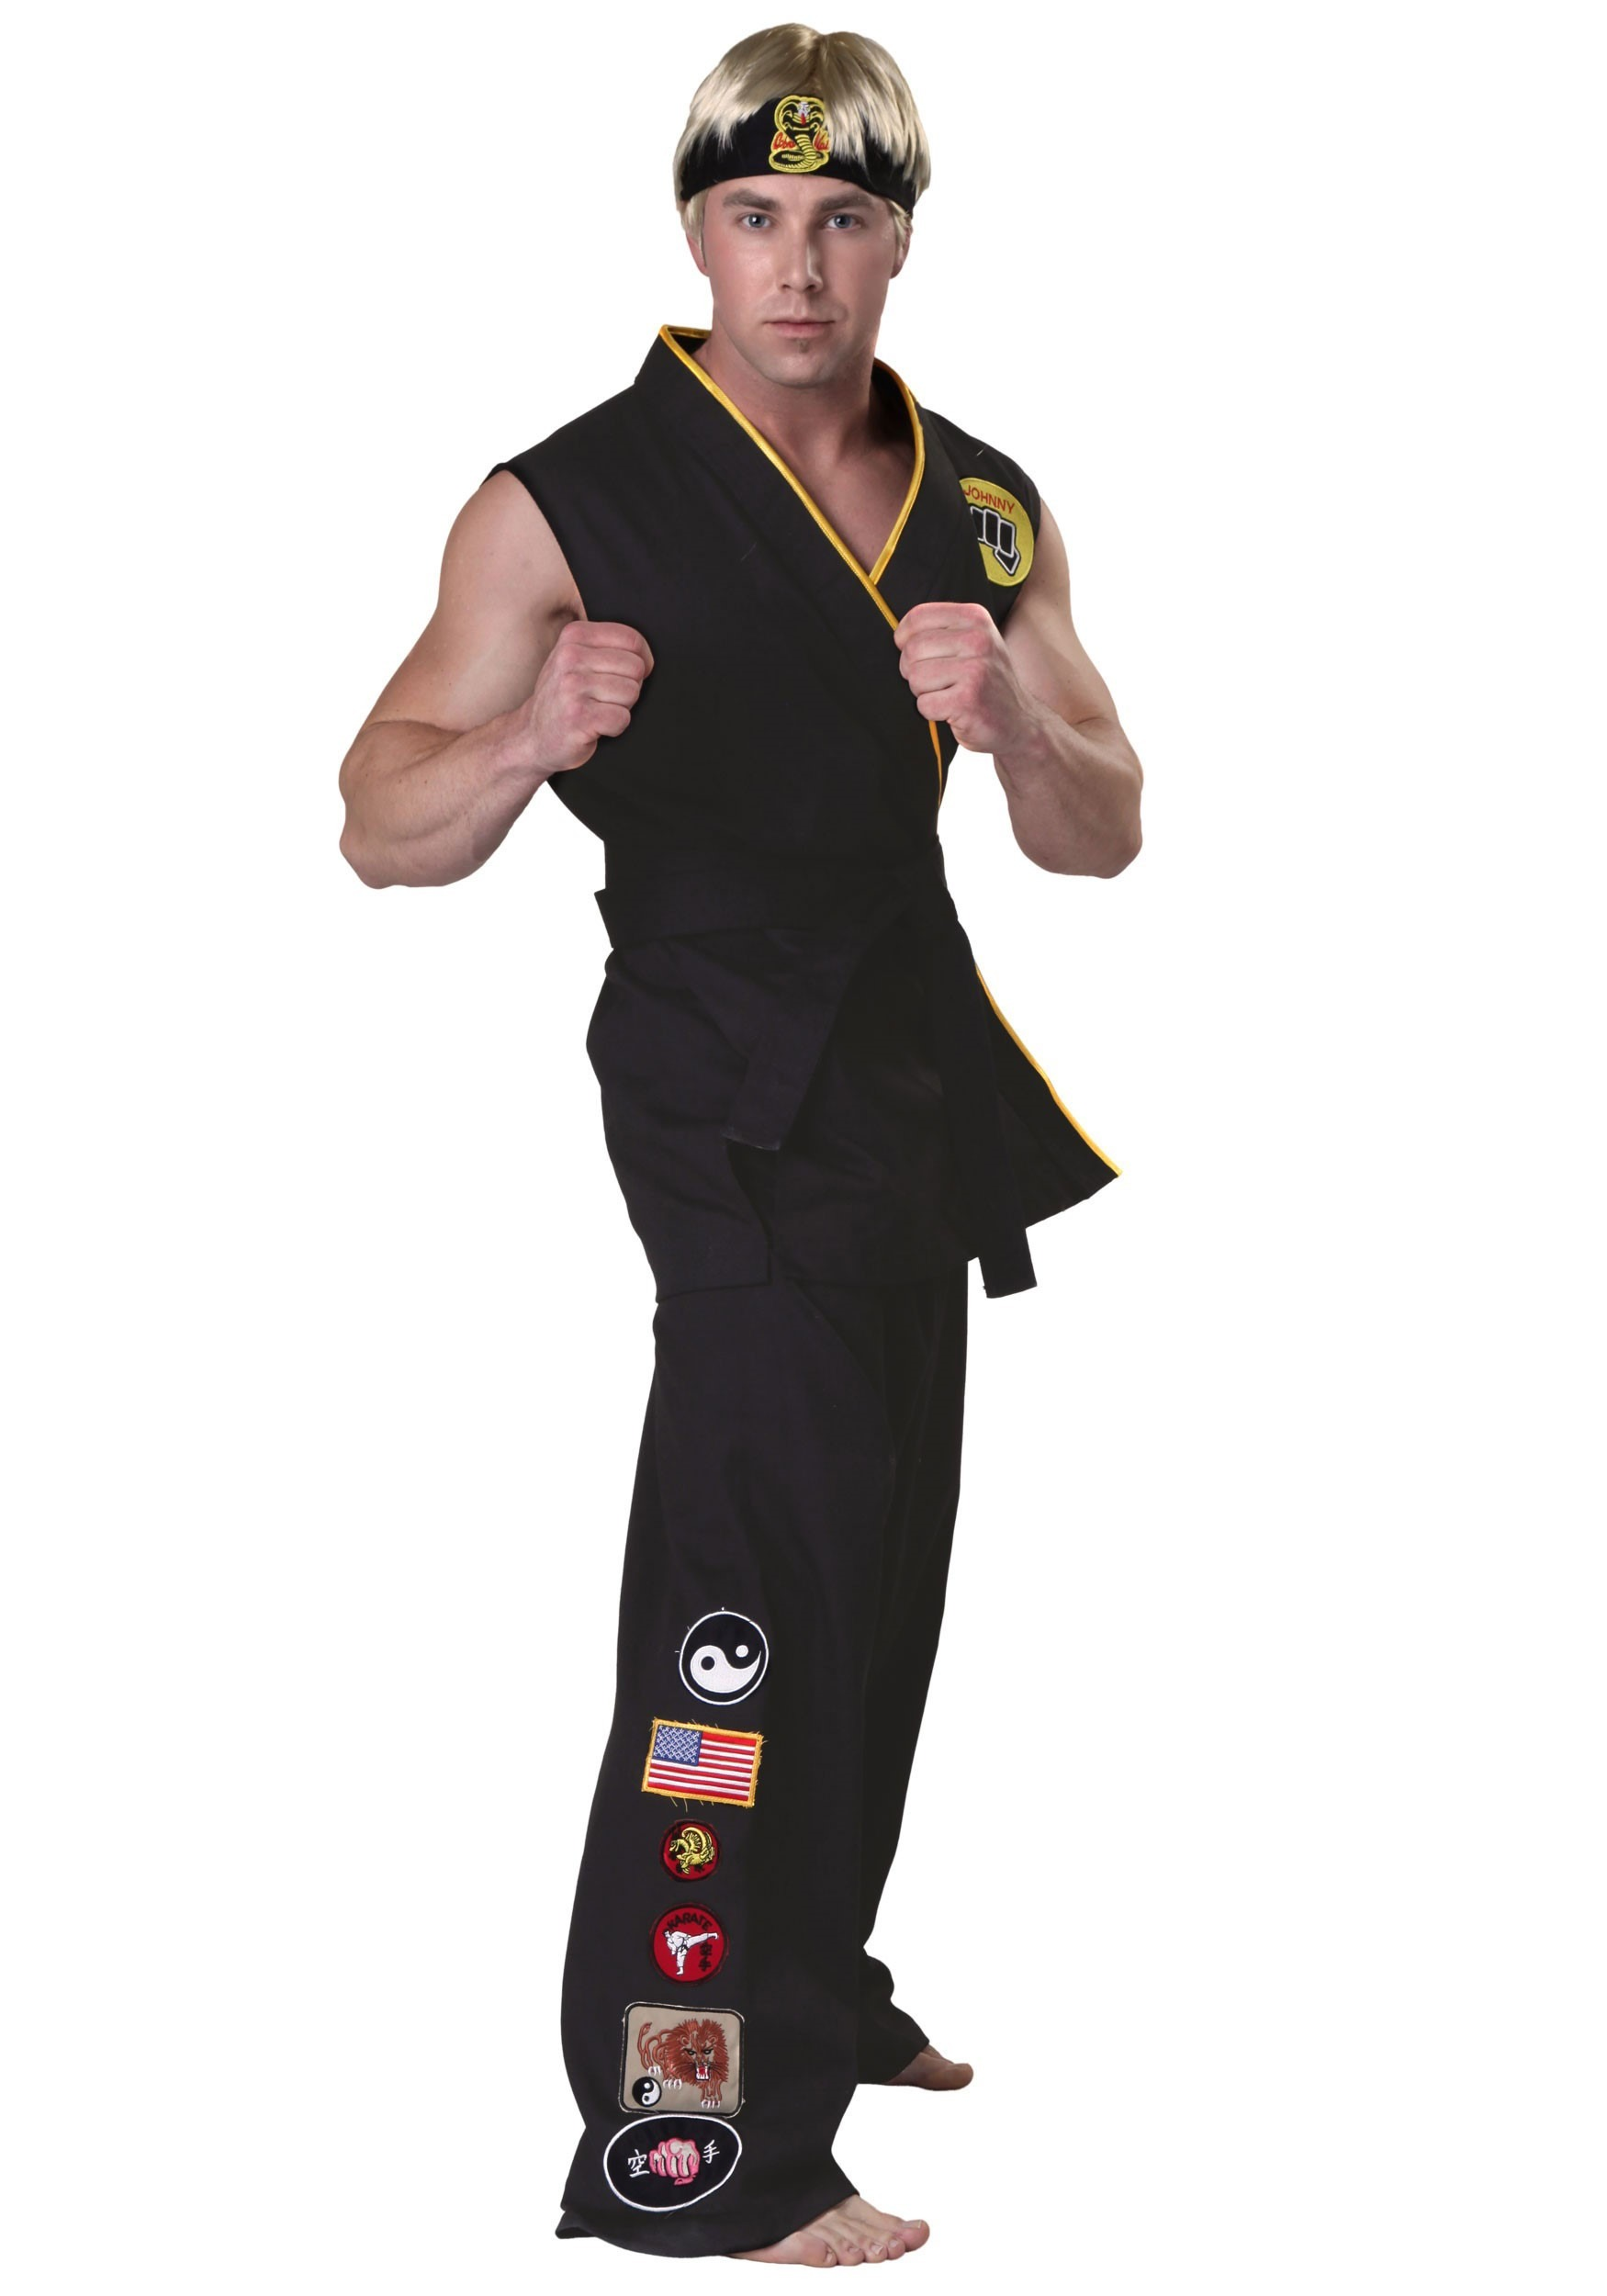 Authentic Karate Kid Cobra Kai Costume KAR2231AD